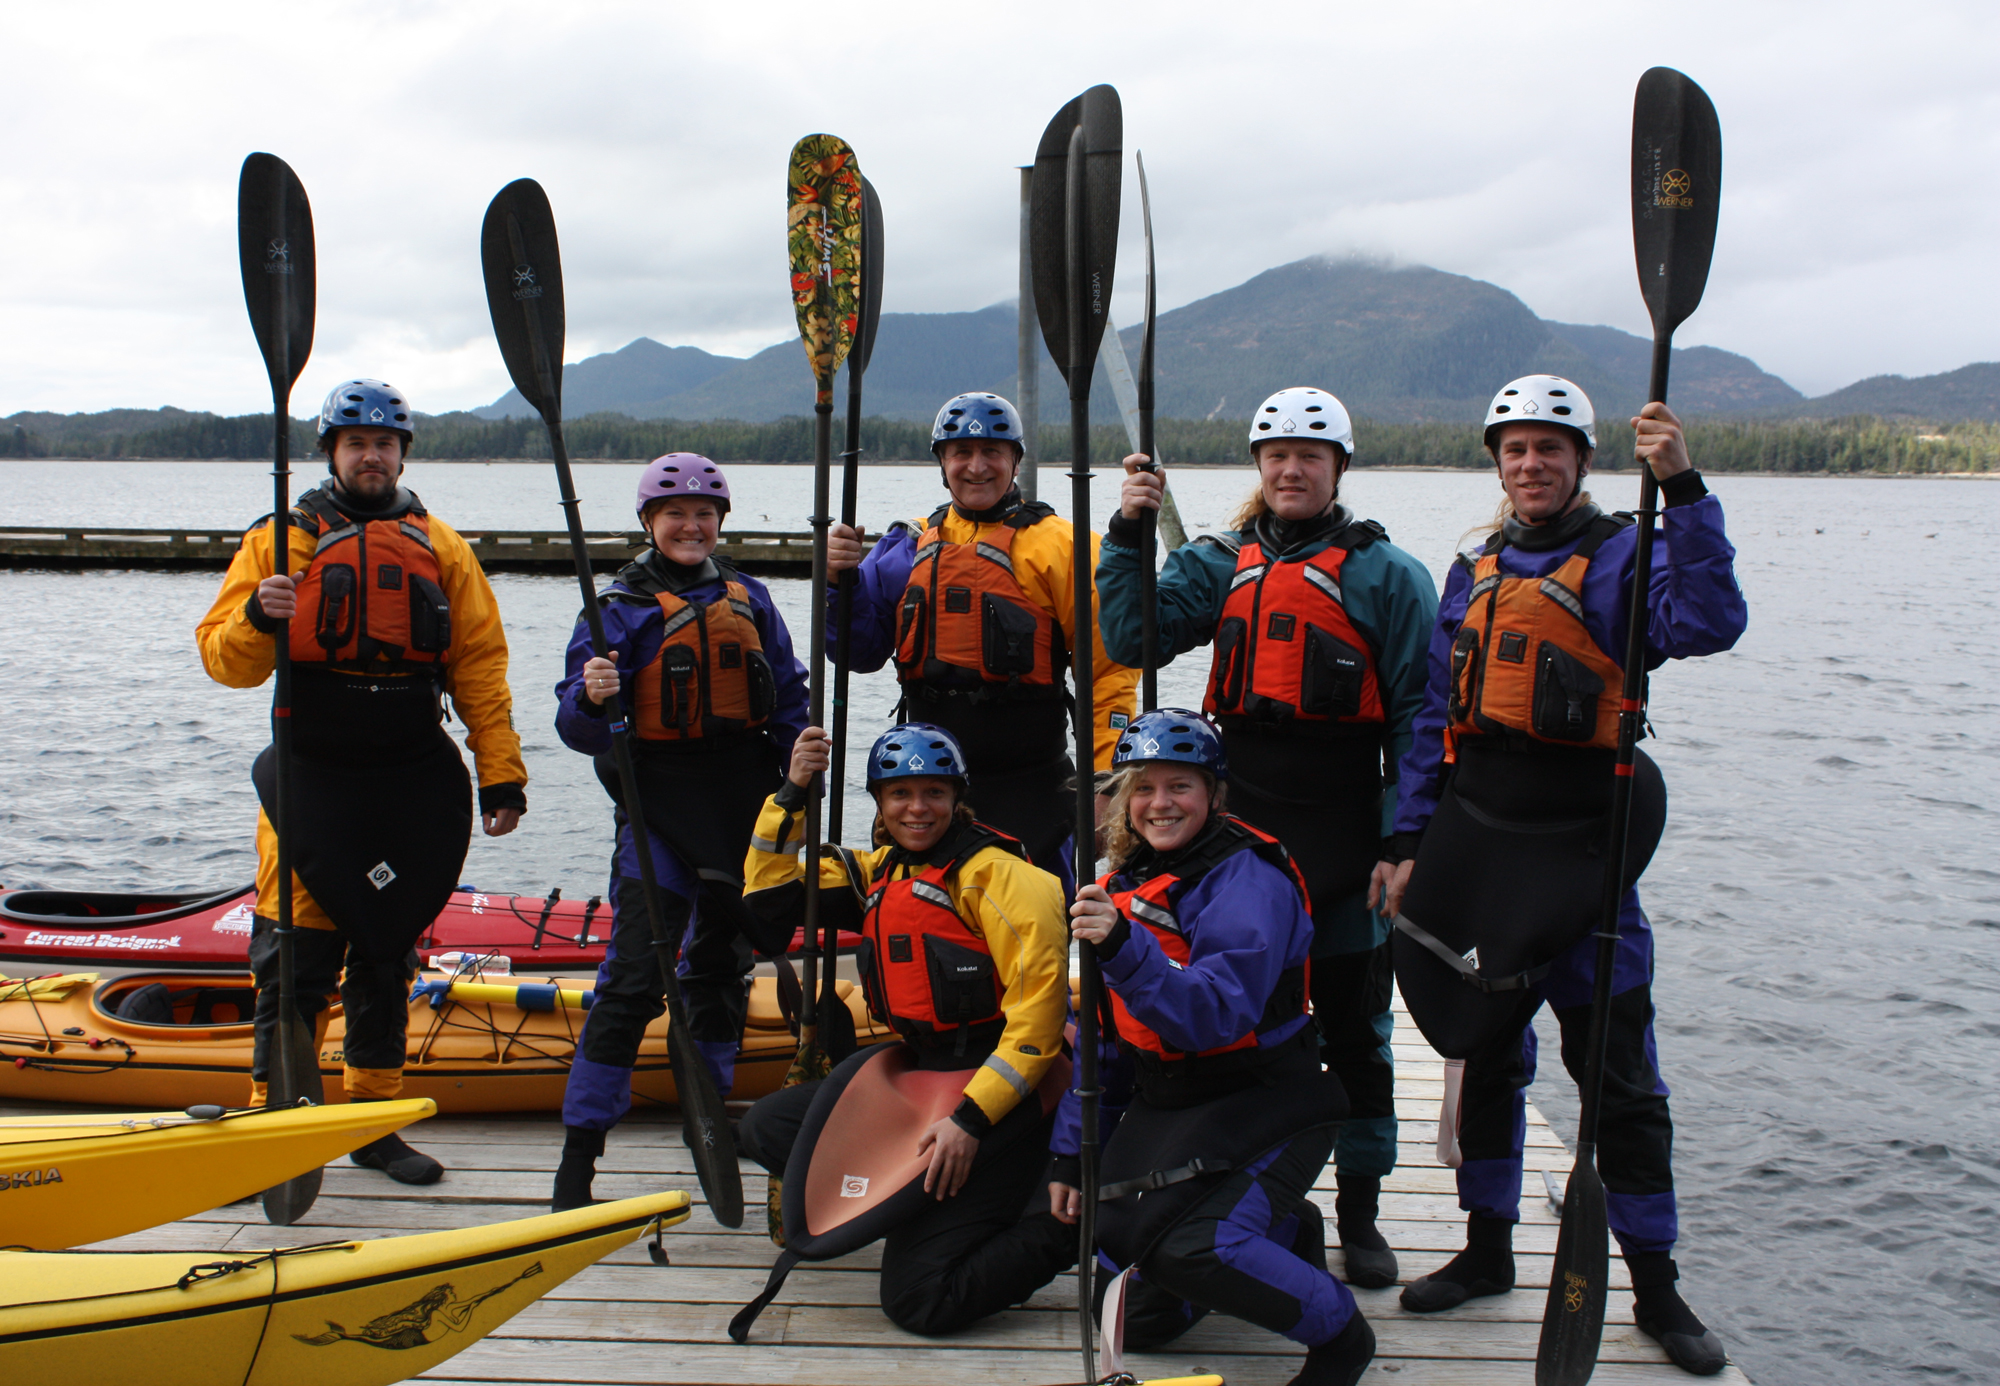 2010 Guides ready for dry-suit training